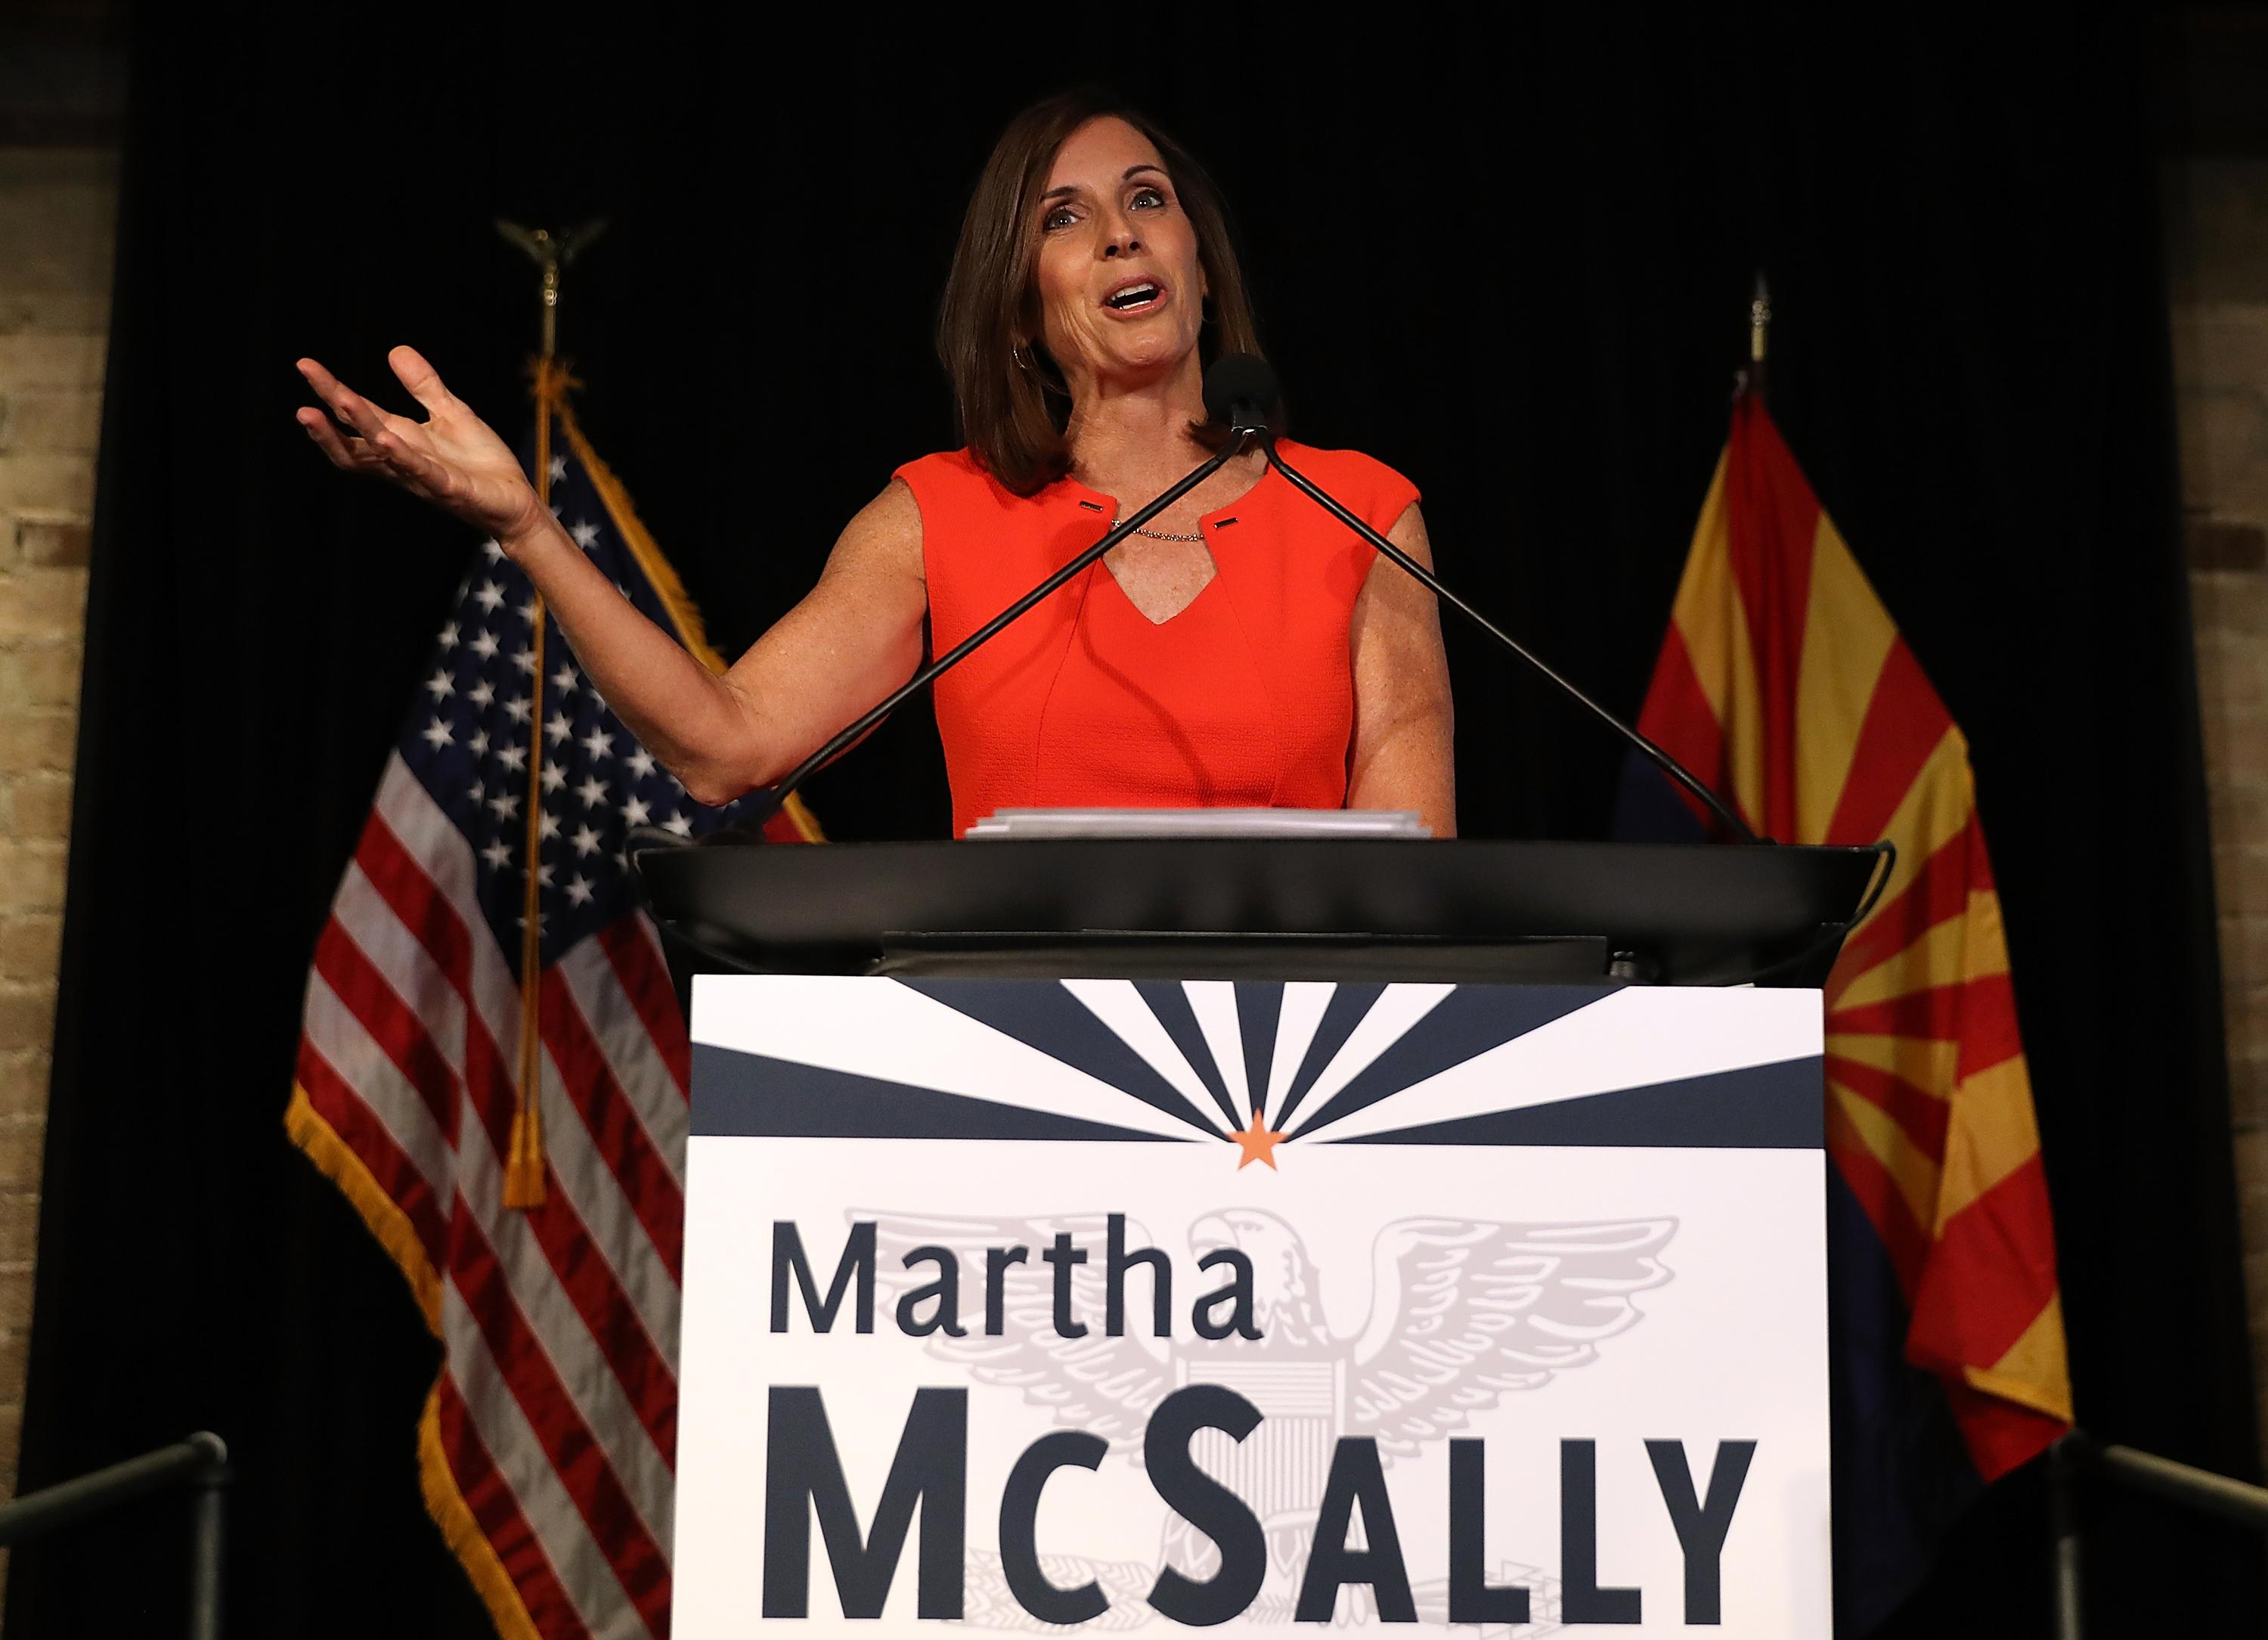 Martha McSally, in a red dress, gestures upward while speaking at a podium.